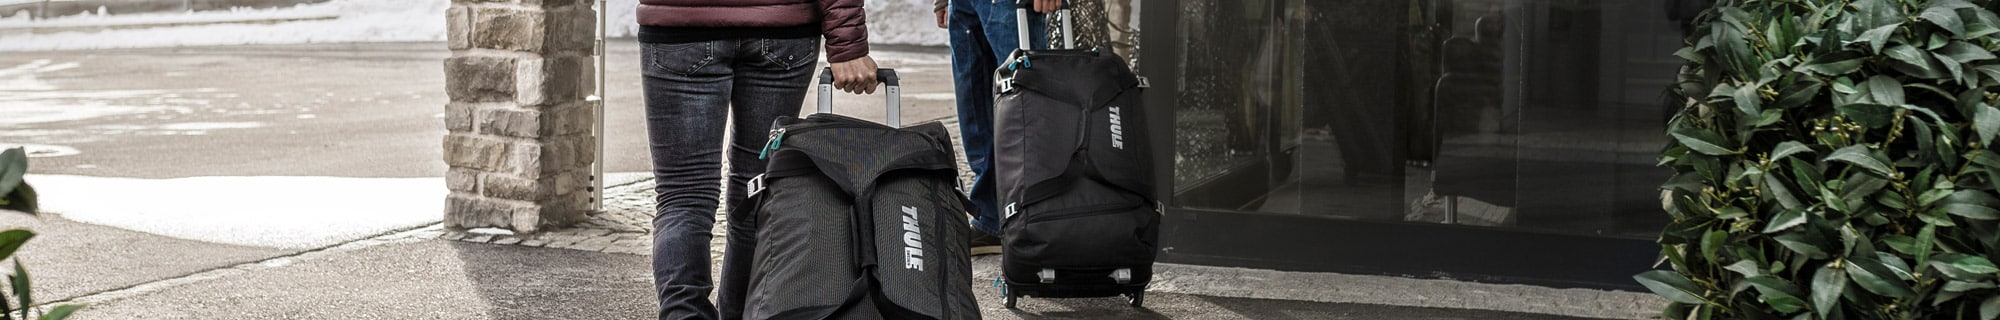 Thule checked luggage